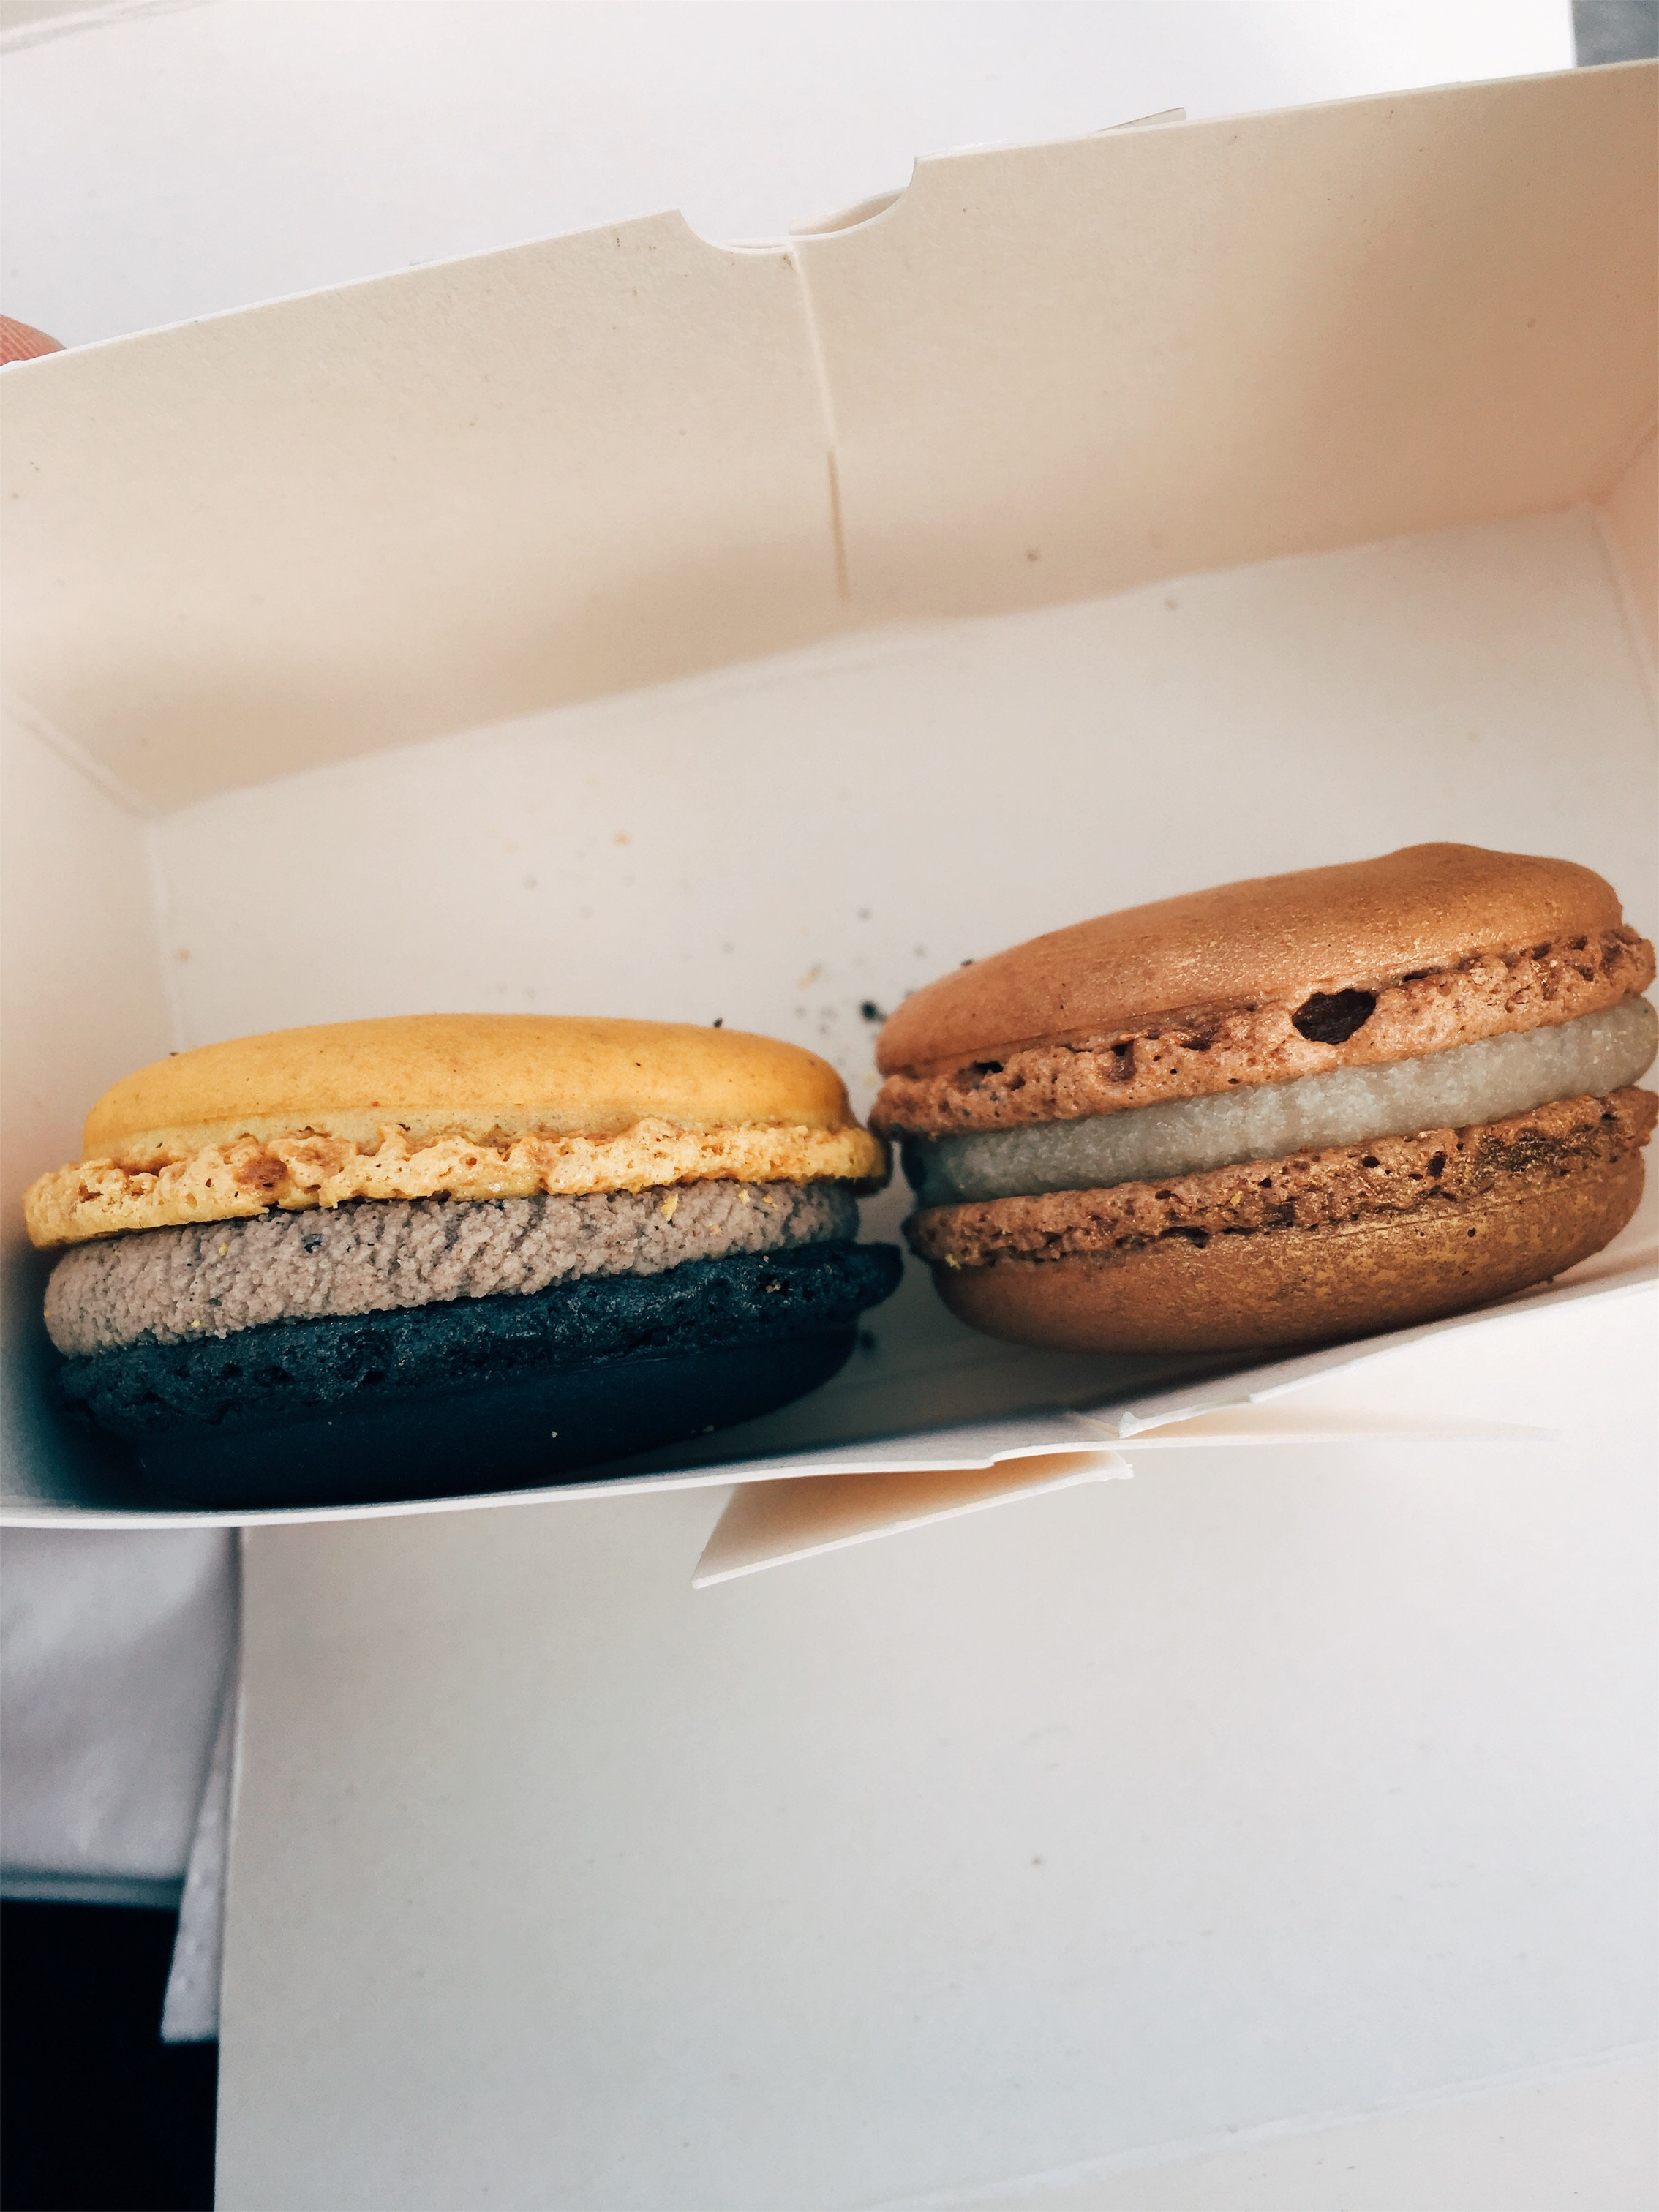 I know what you're thinking, but no that's not sesame. That's actually a black lemon macaron on the left. On the right is date+earl grey